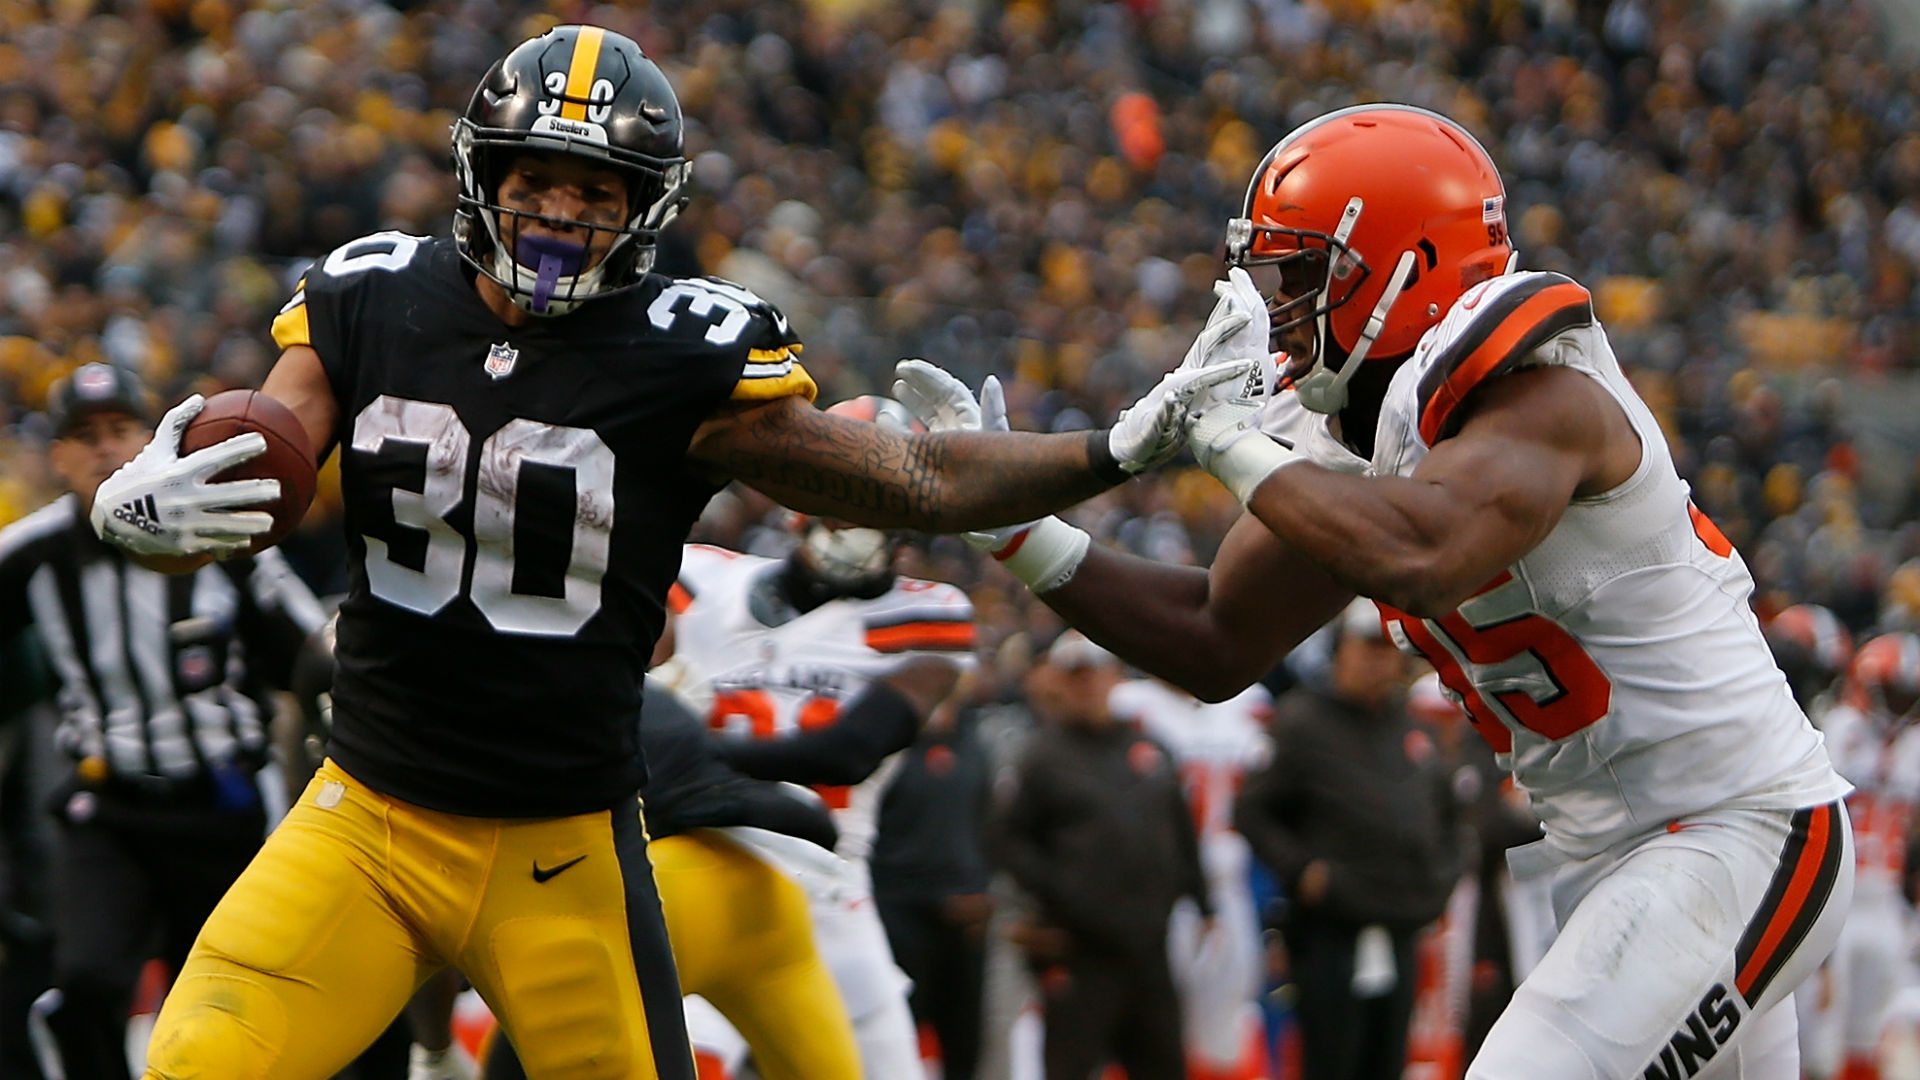 NFL picks, predictions for Week 11: Steelers top Browns, Texans get by Ravens, 49ers roll